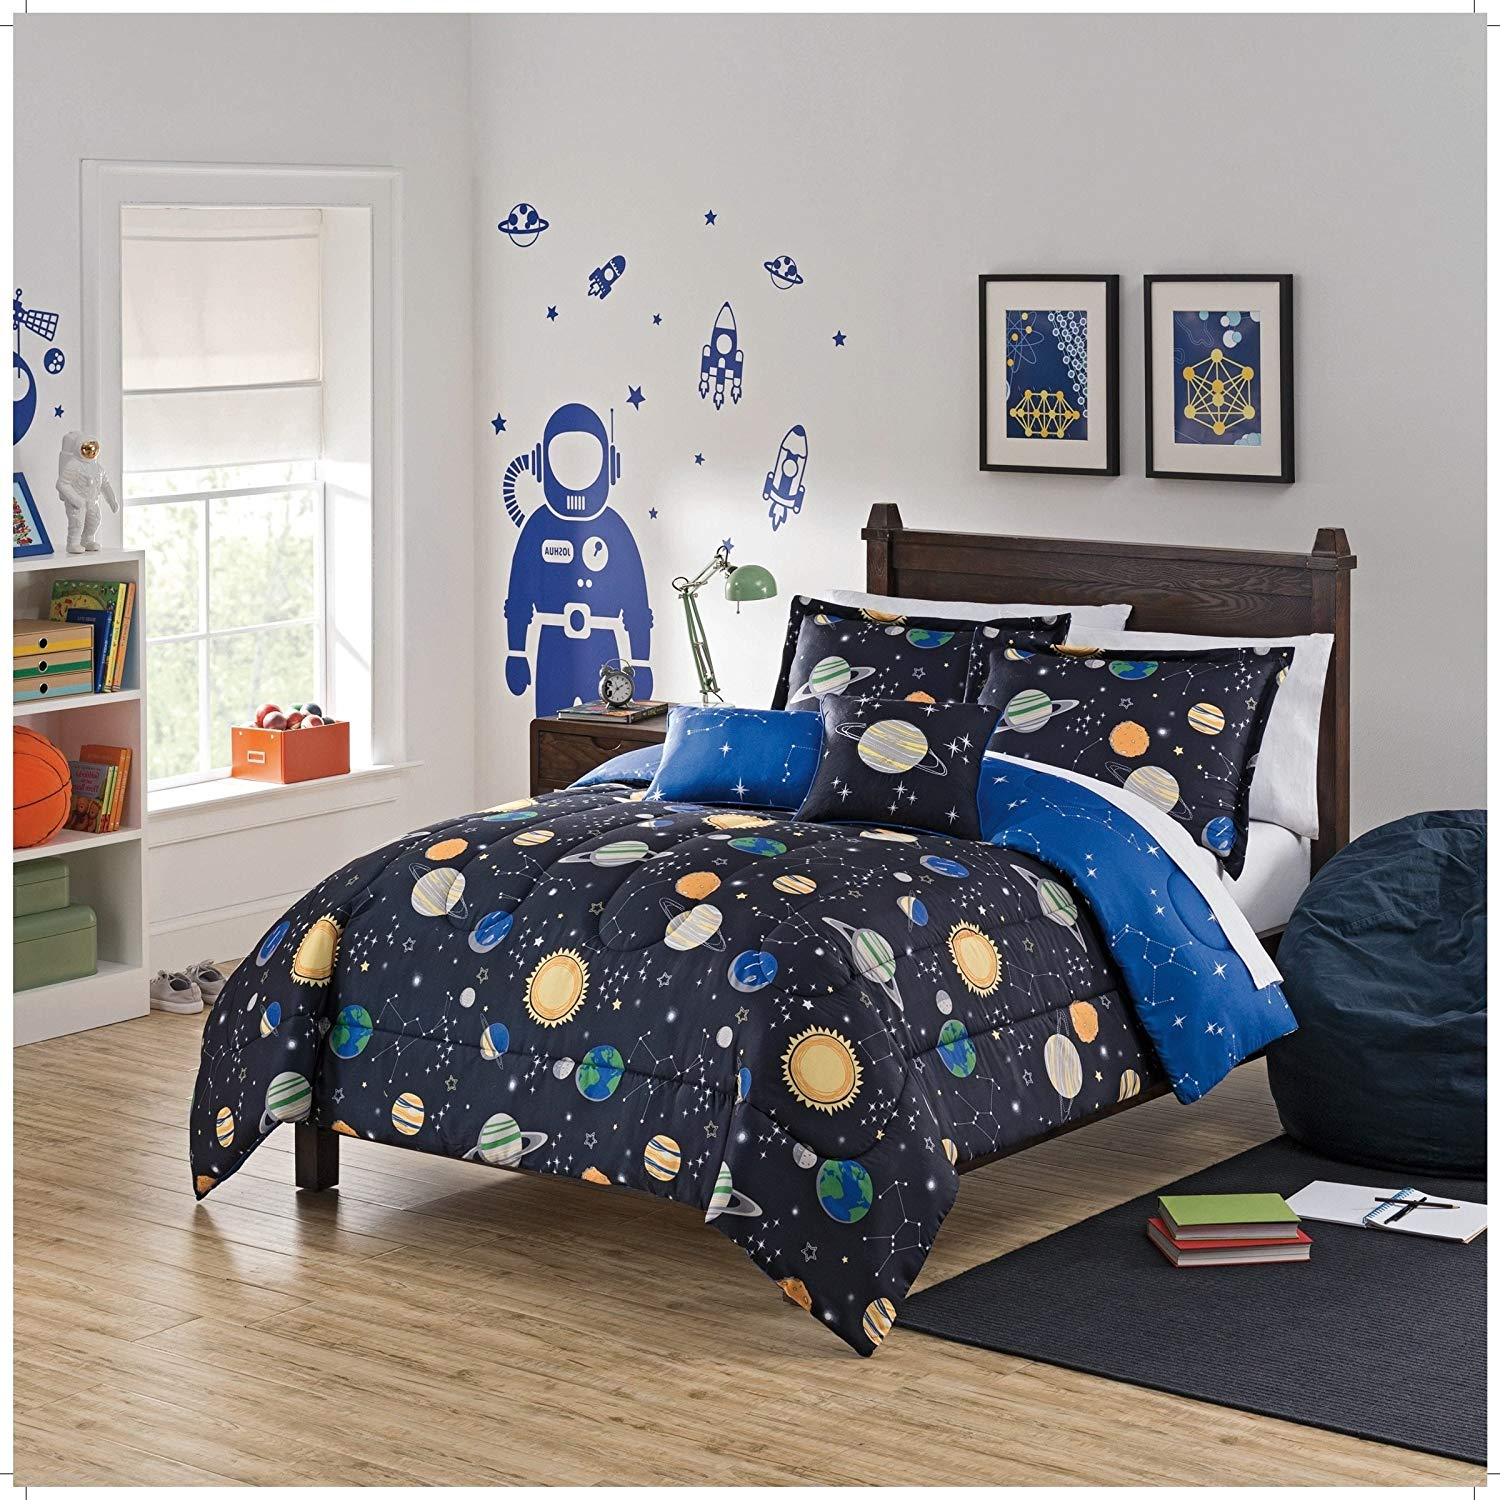 CA 3 Piece Multi Kids Space Adventure Comforter Set Full Queen, Black Blue Orange Grey Graphic Print Sun Stars Planet Motifs Teen Themed Reversible Kids Bedding for Bedroom Colorful Casual, Polyester